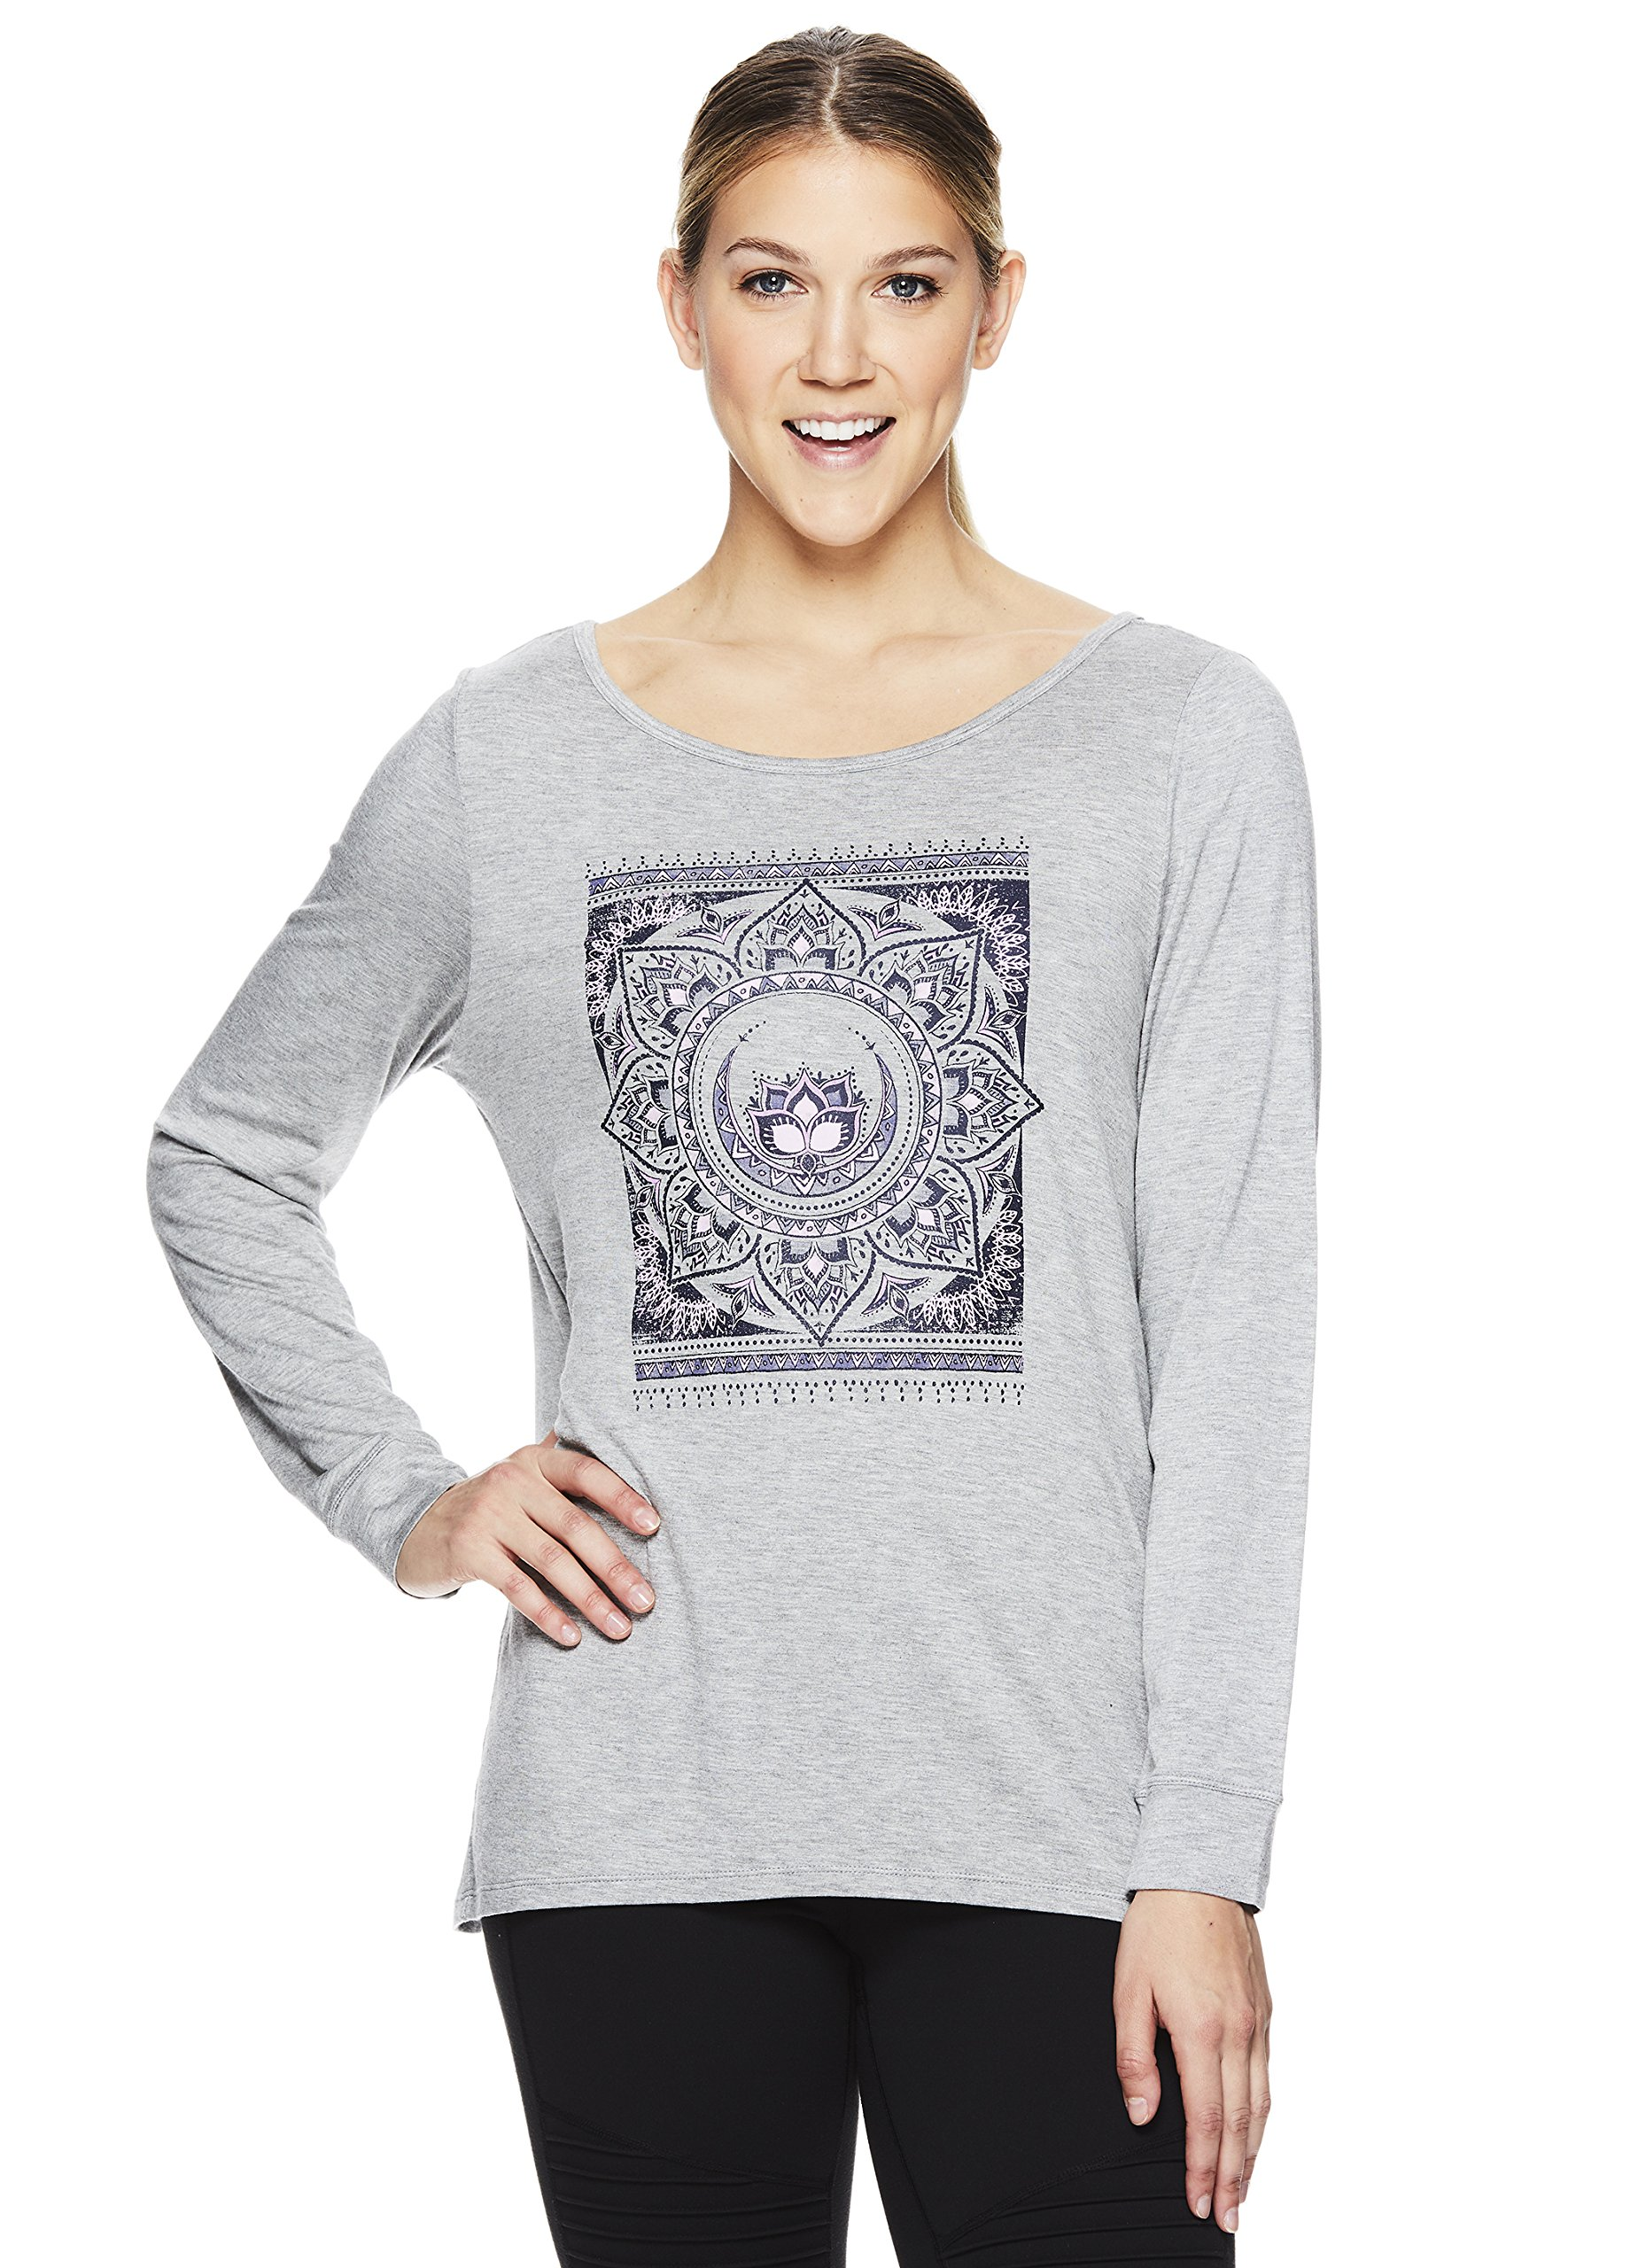 Gaiam Women's Long Sleeve Graphic Yoga T Shirt - Activewear Top w/Open Back - Hailey Grey Heather, Small by Gaiam